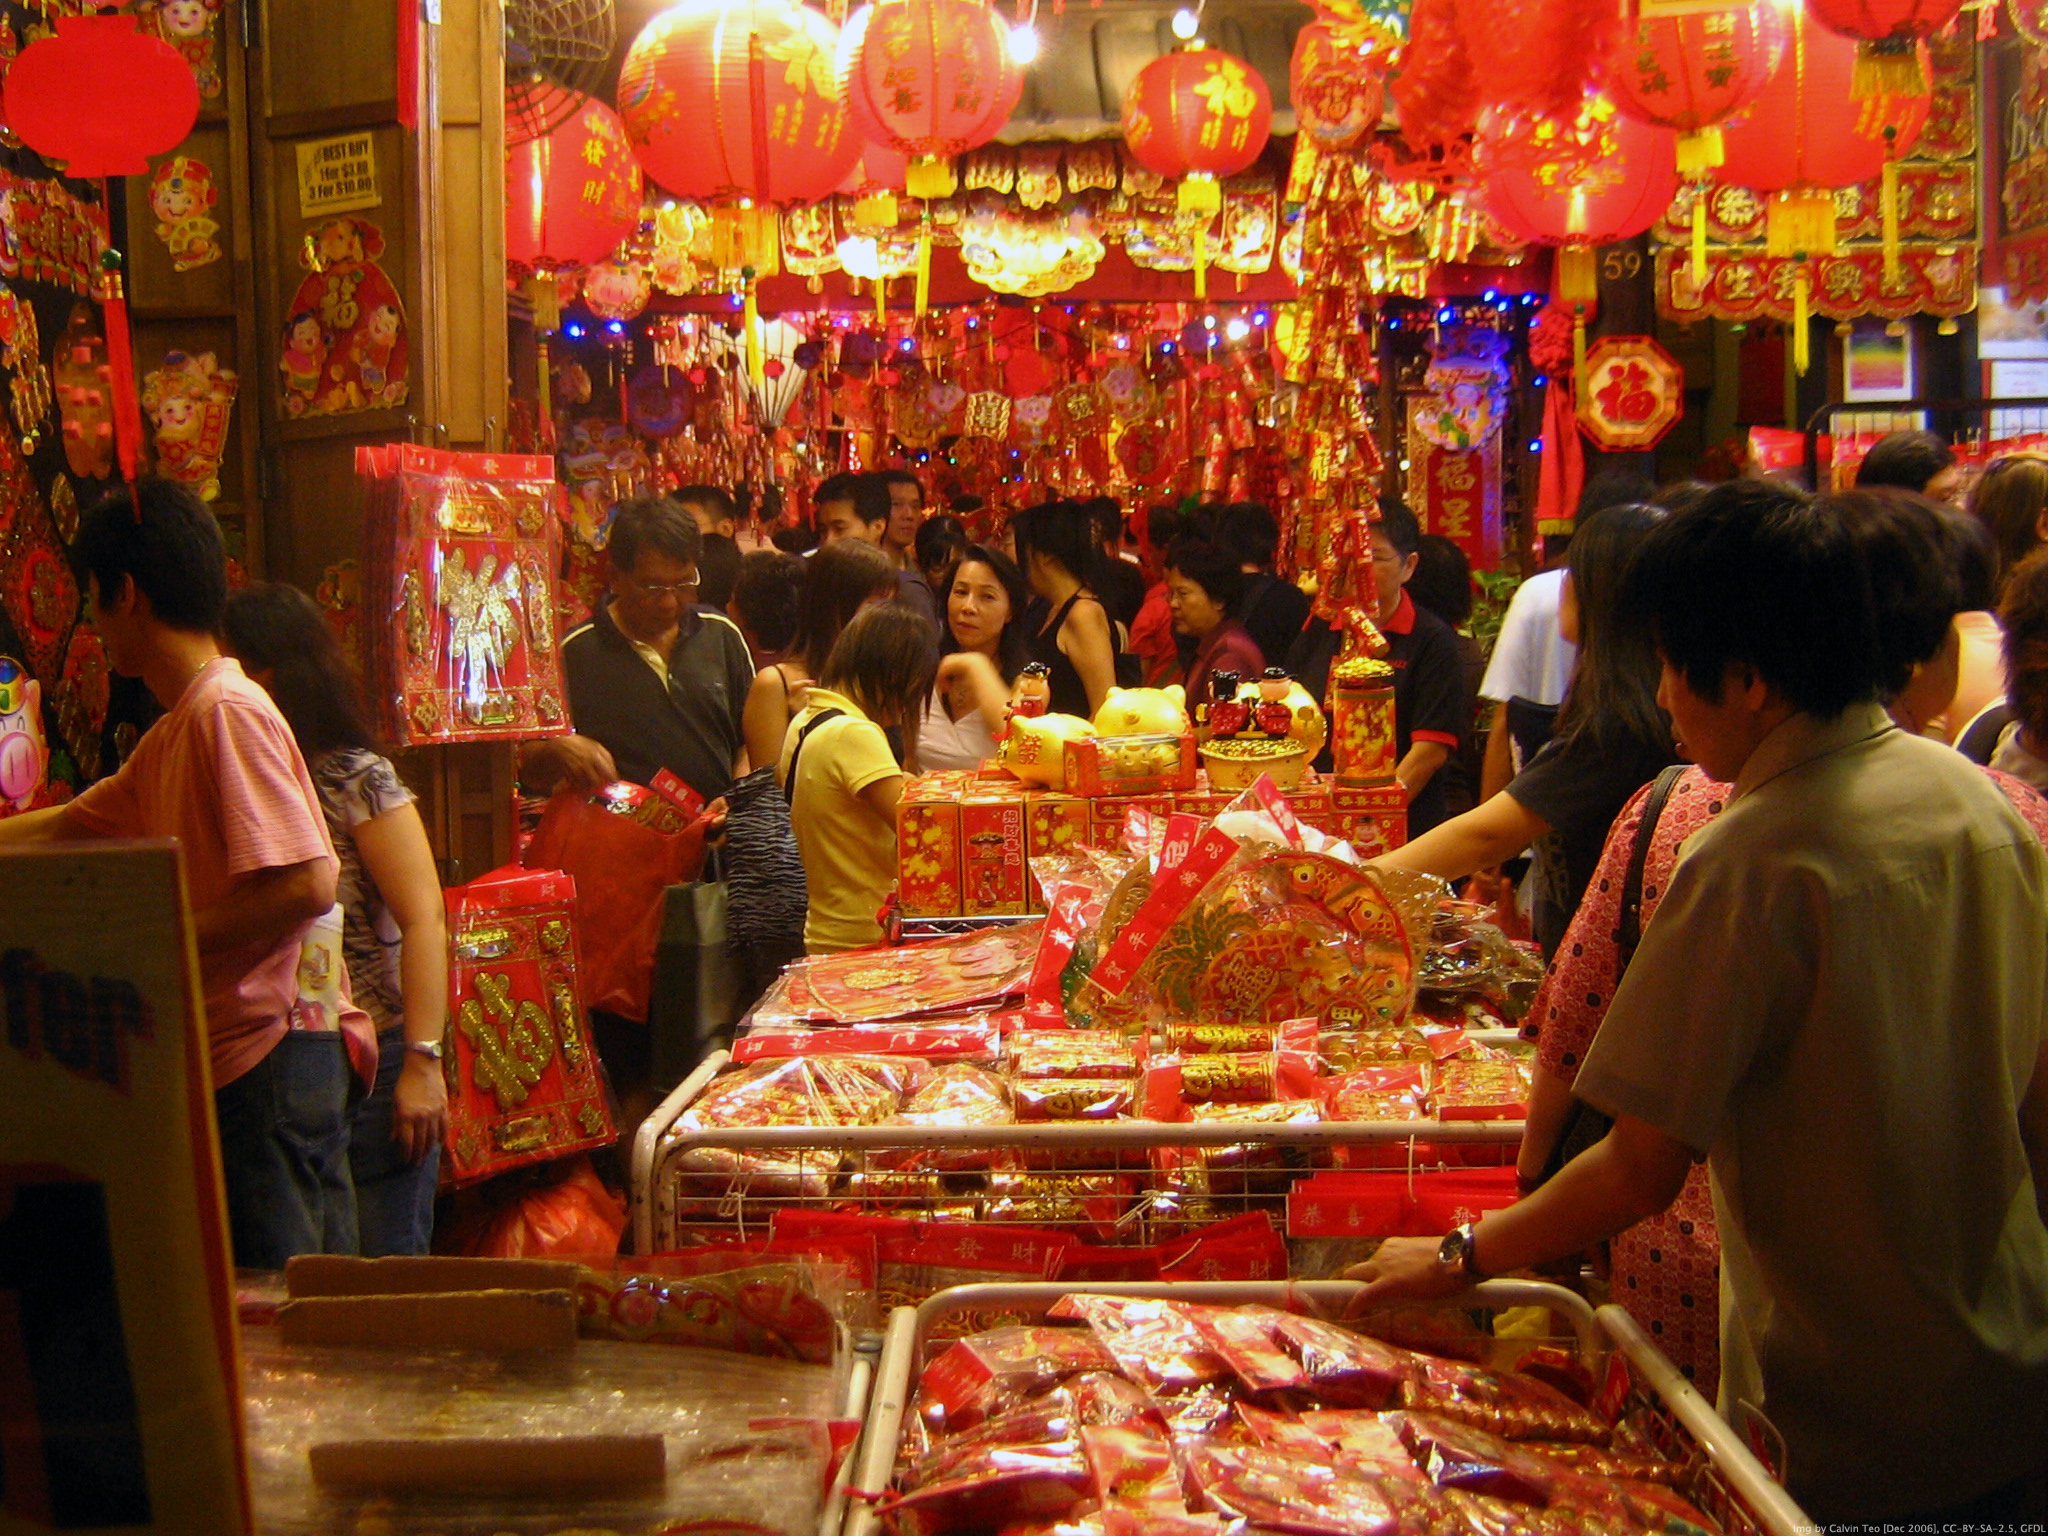 http://upload.wikimedia.org/wikipedia/commons/9/9e/Chinese_New_Year_market.jpg